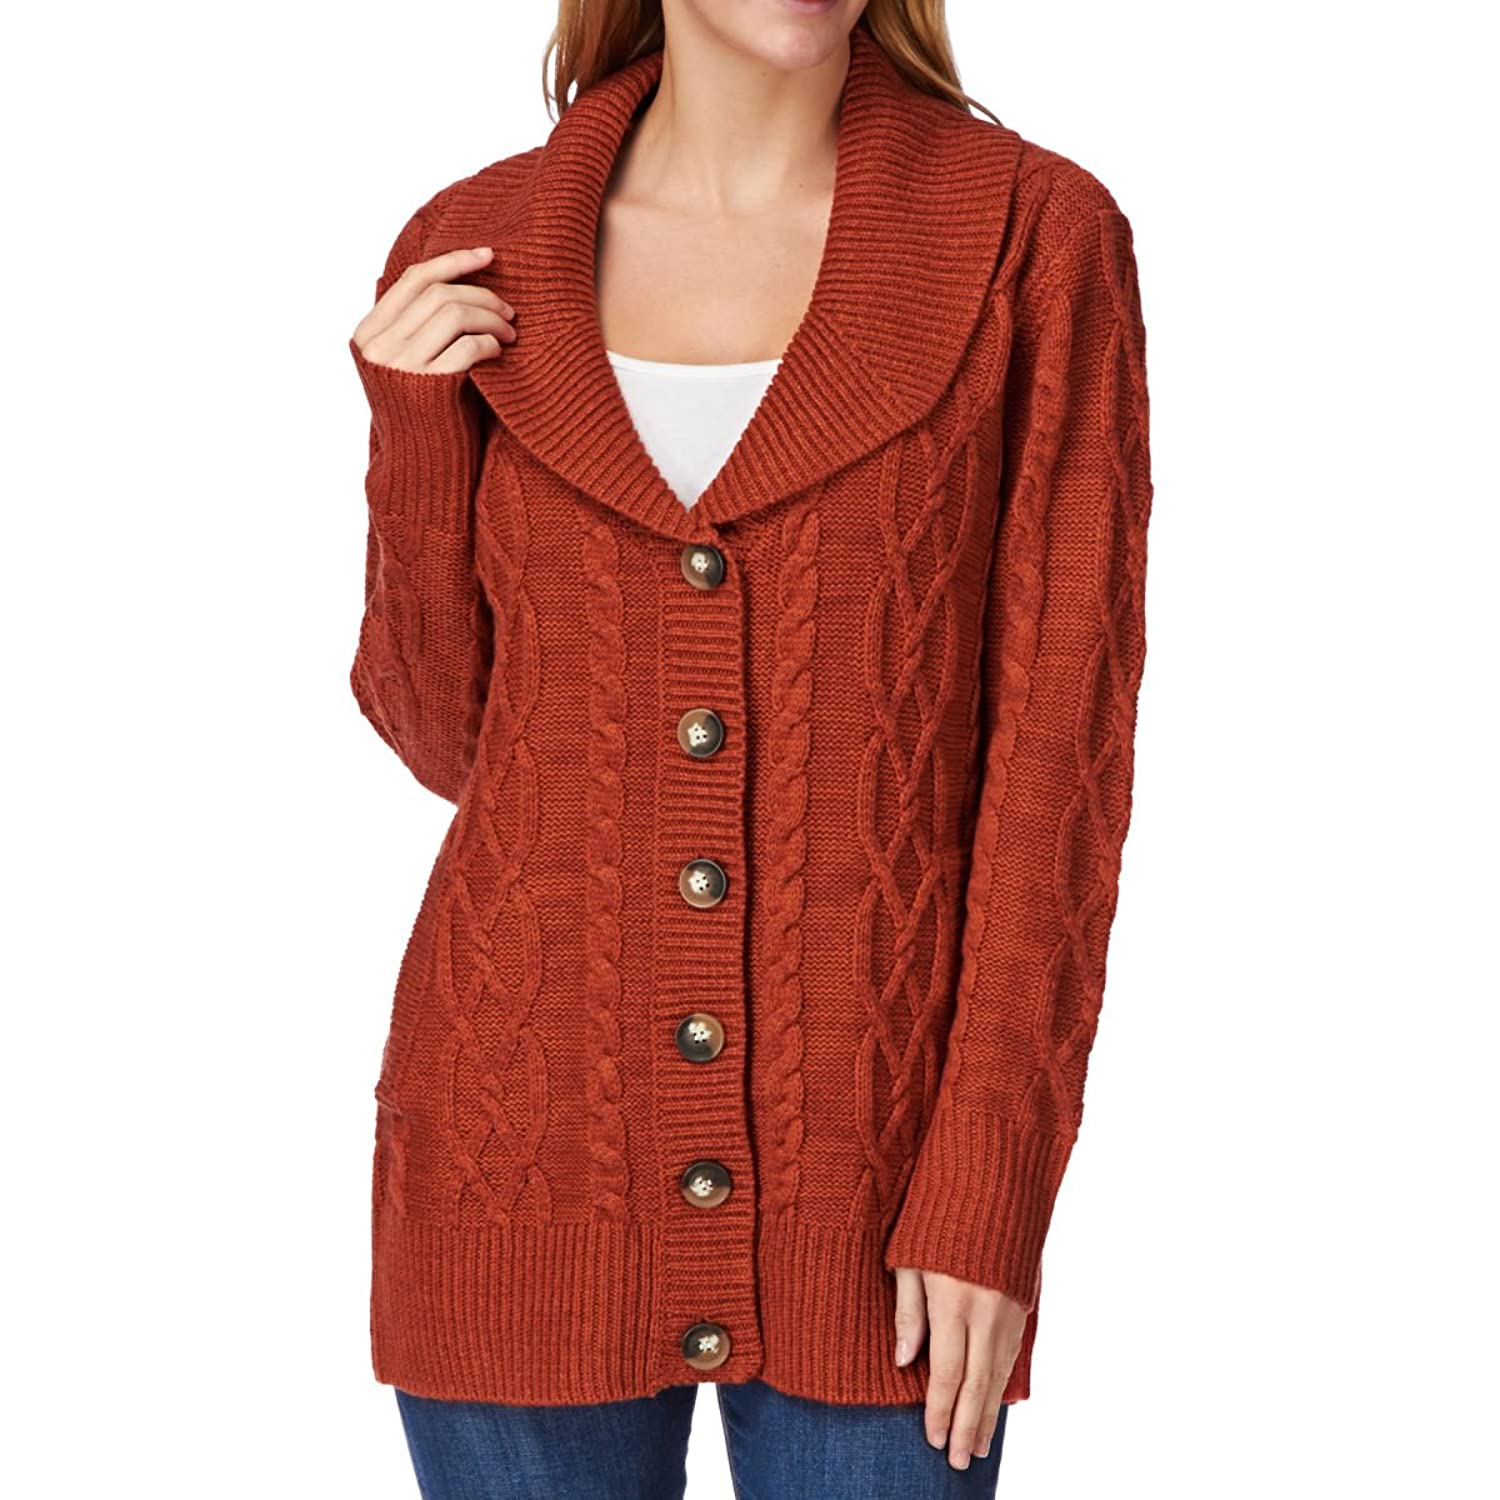 80%OFF Animal Women's Chunky Knit Button Up Cardigan - blu.ecigs.com